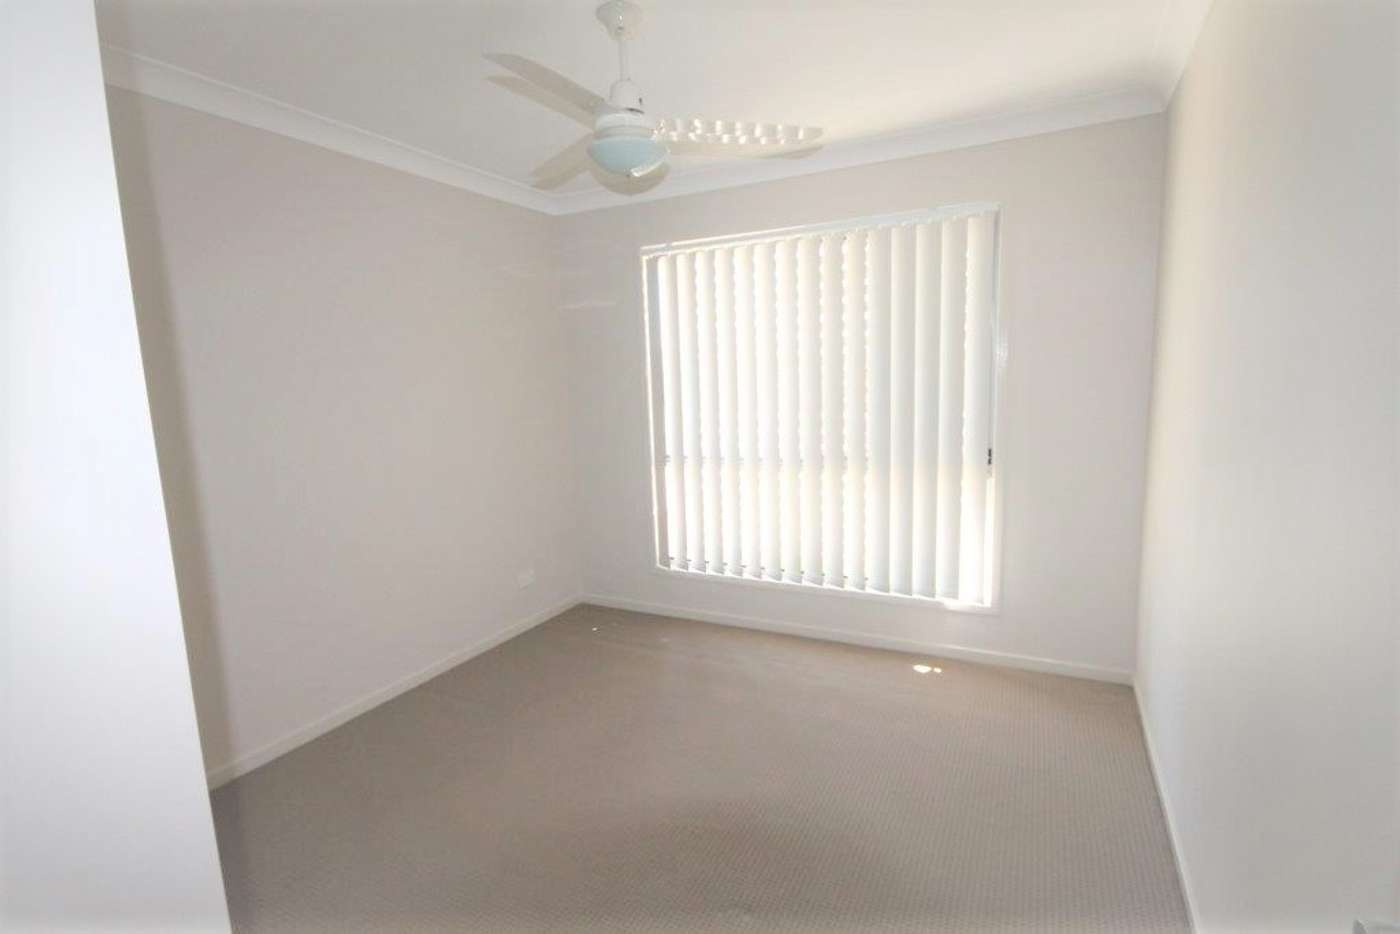 Sixth view of Homely house listing, 2/169 Male Road, Caboolture QLD 4510